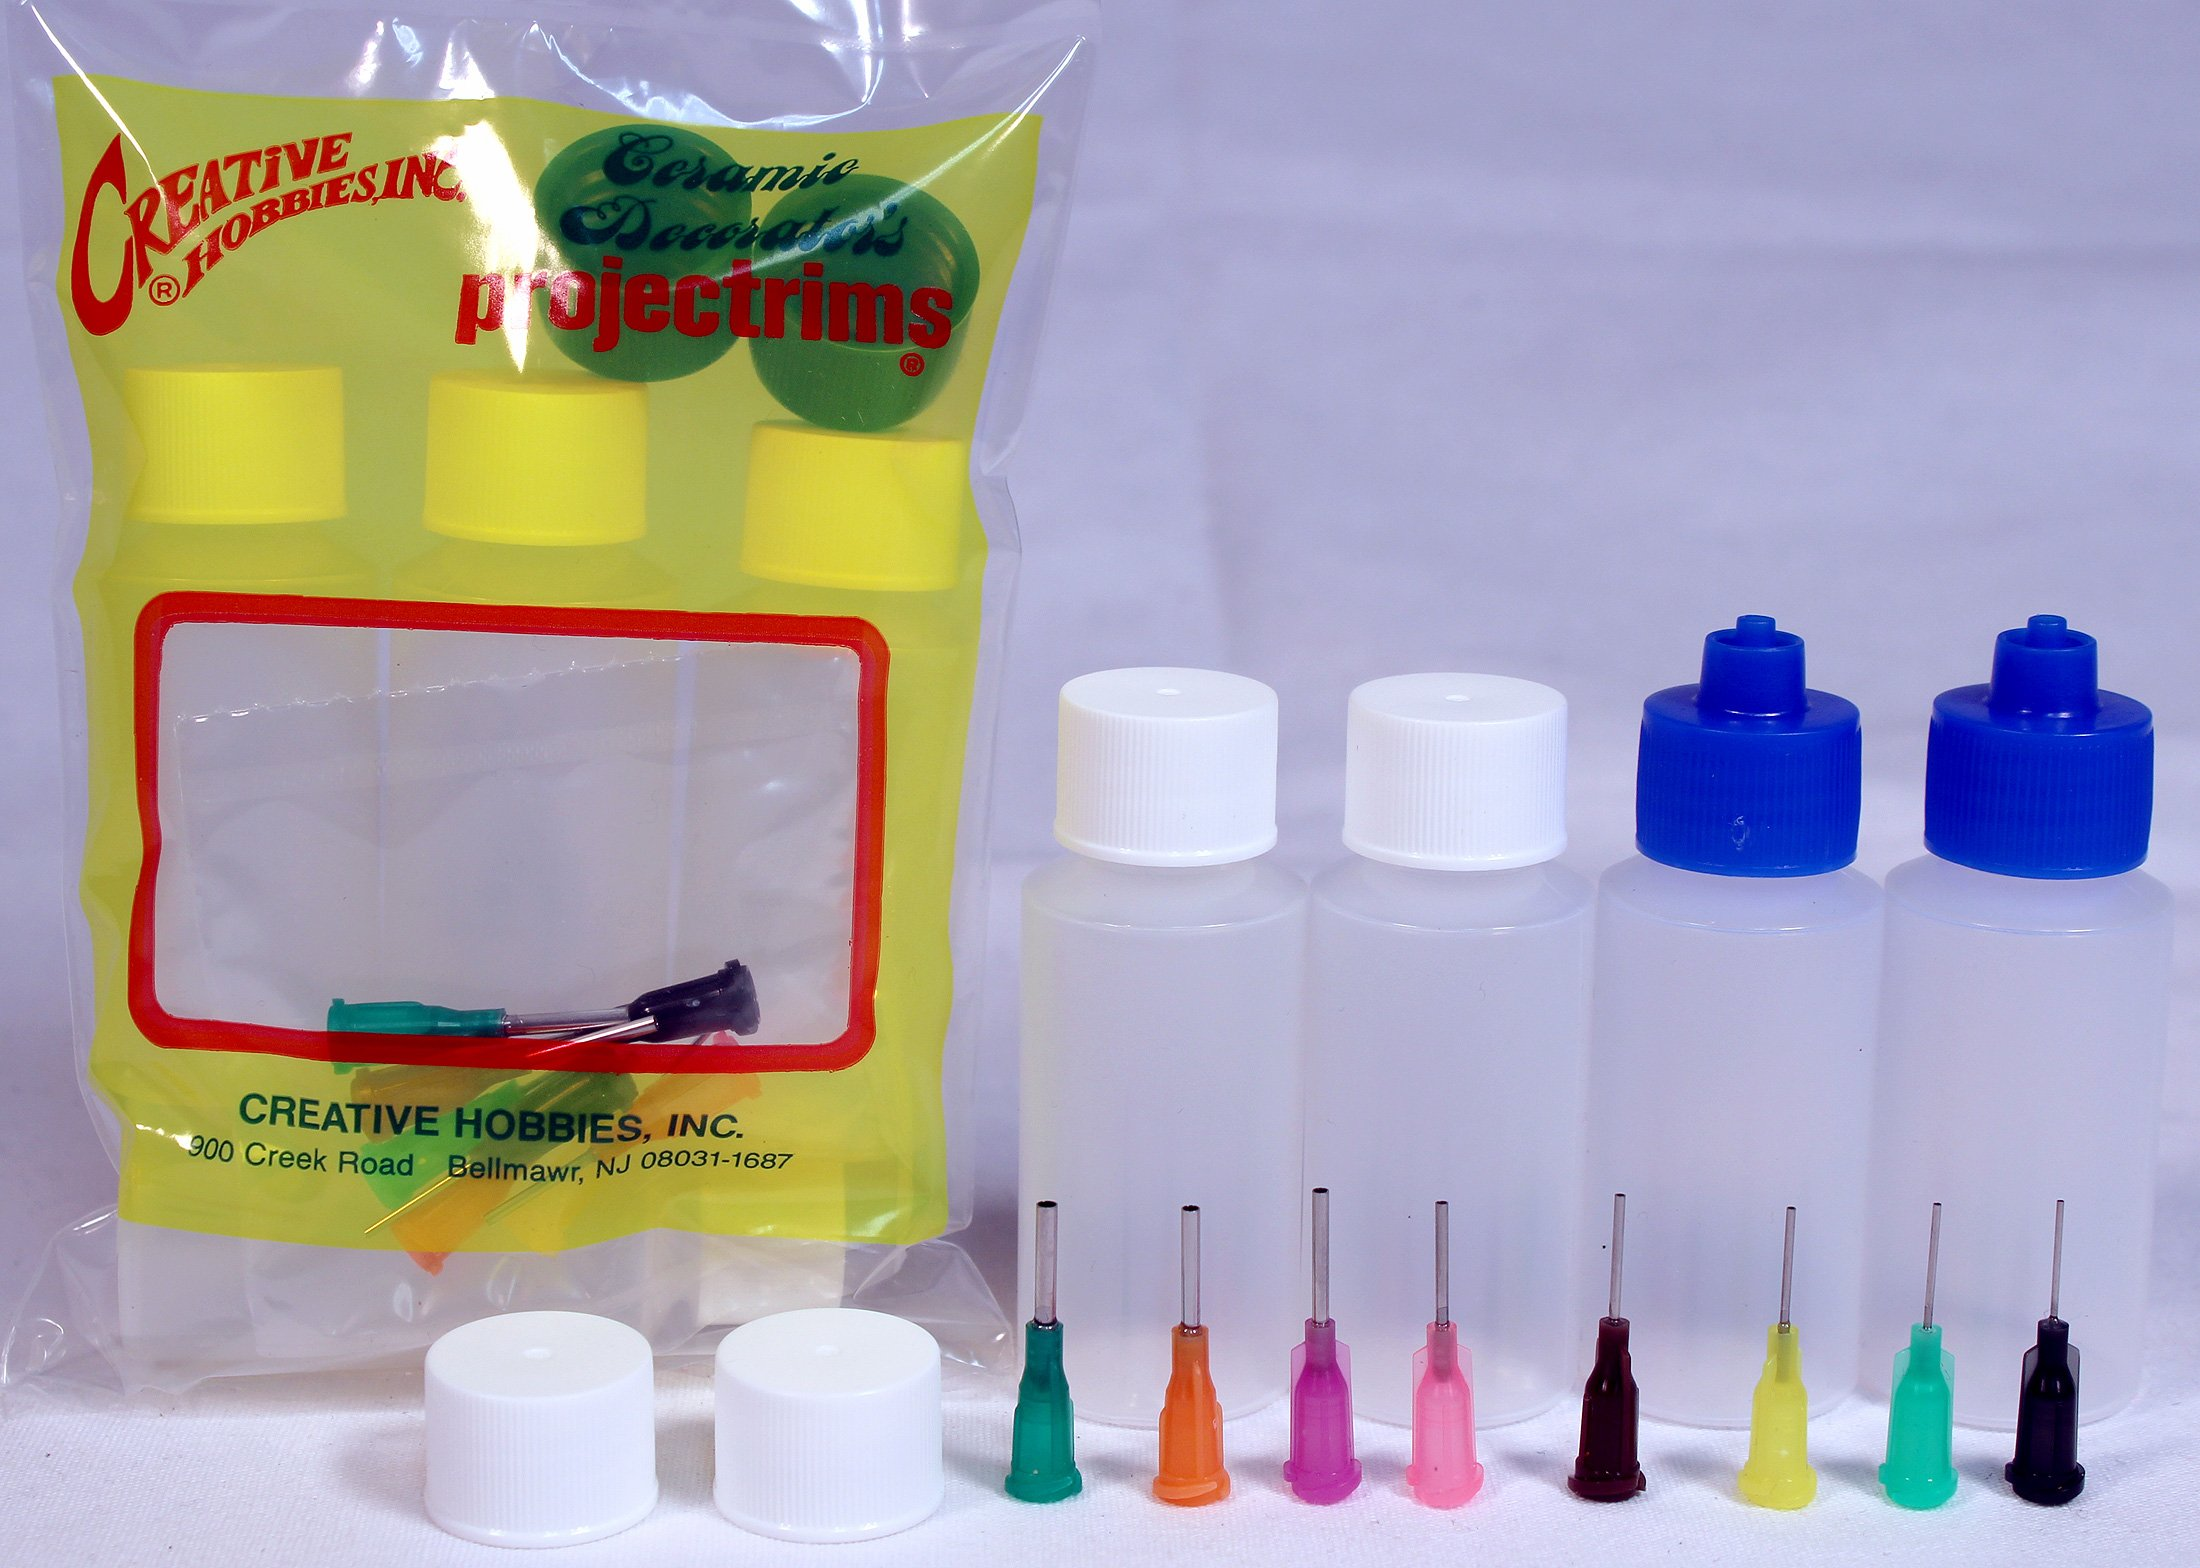 Creative Hobbies Multi Purpose Precision Applicator Super Assortment Set with Four 1 Oz Bottles and 8 Tip Sizes by Creative Hobbies